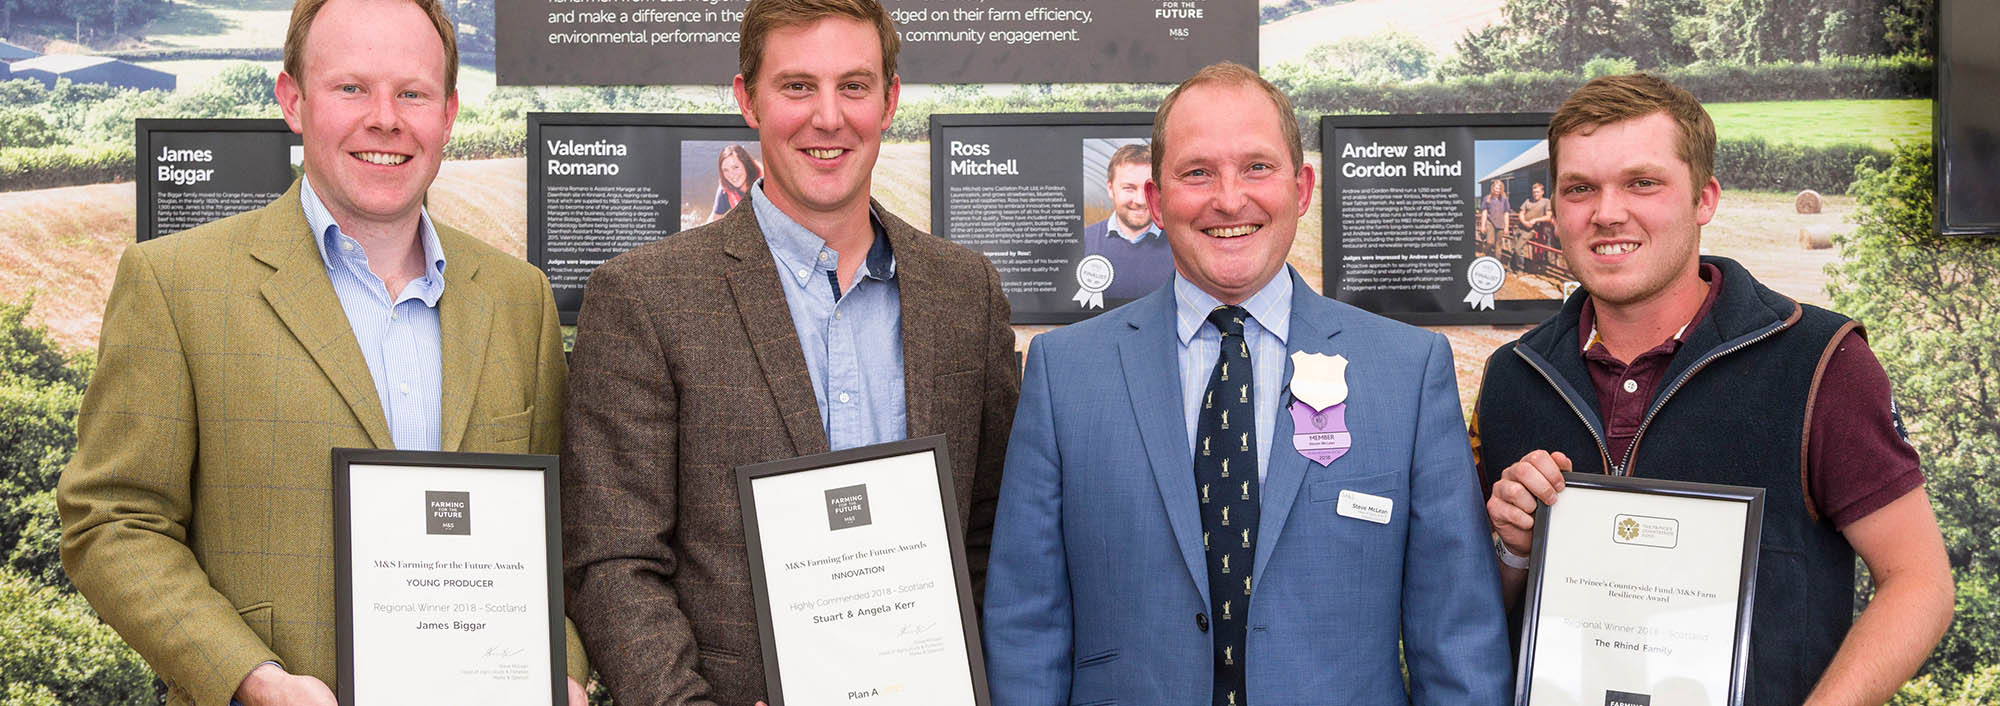 M&S Farming for the Future Awards